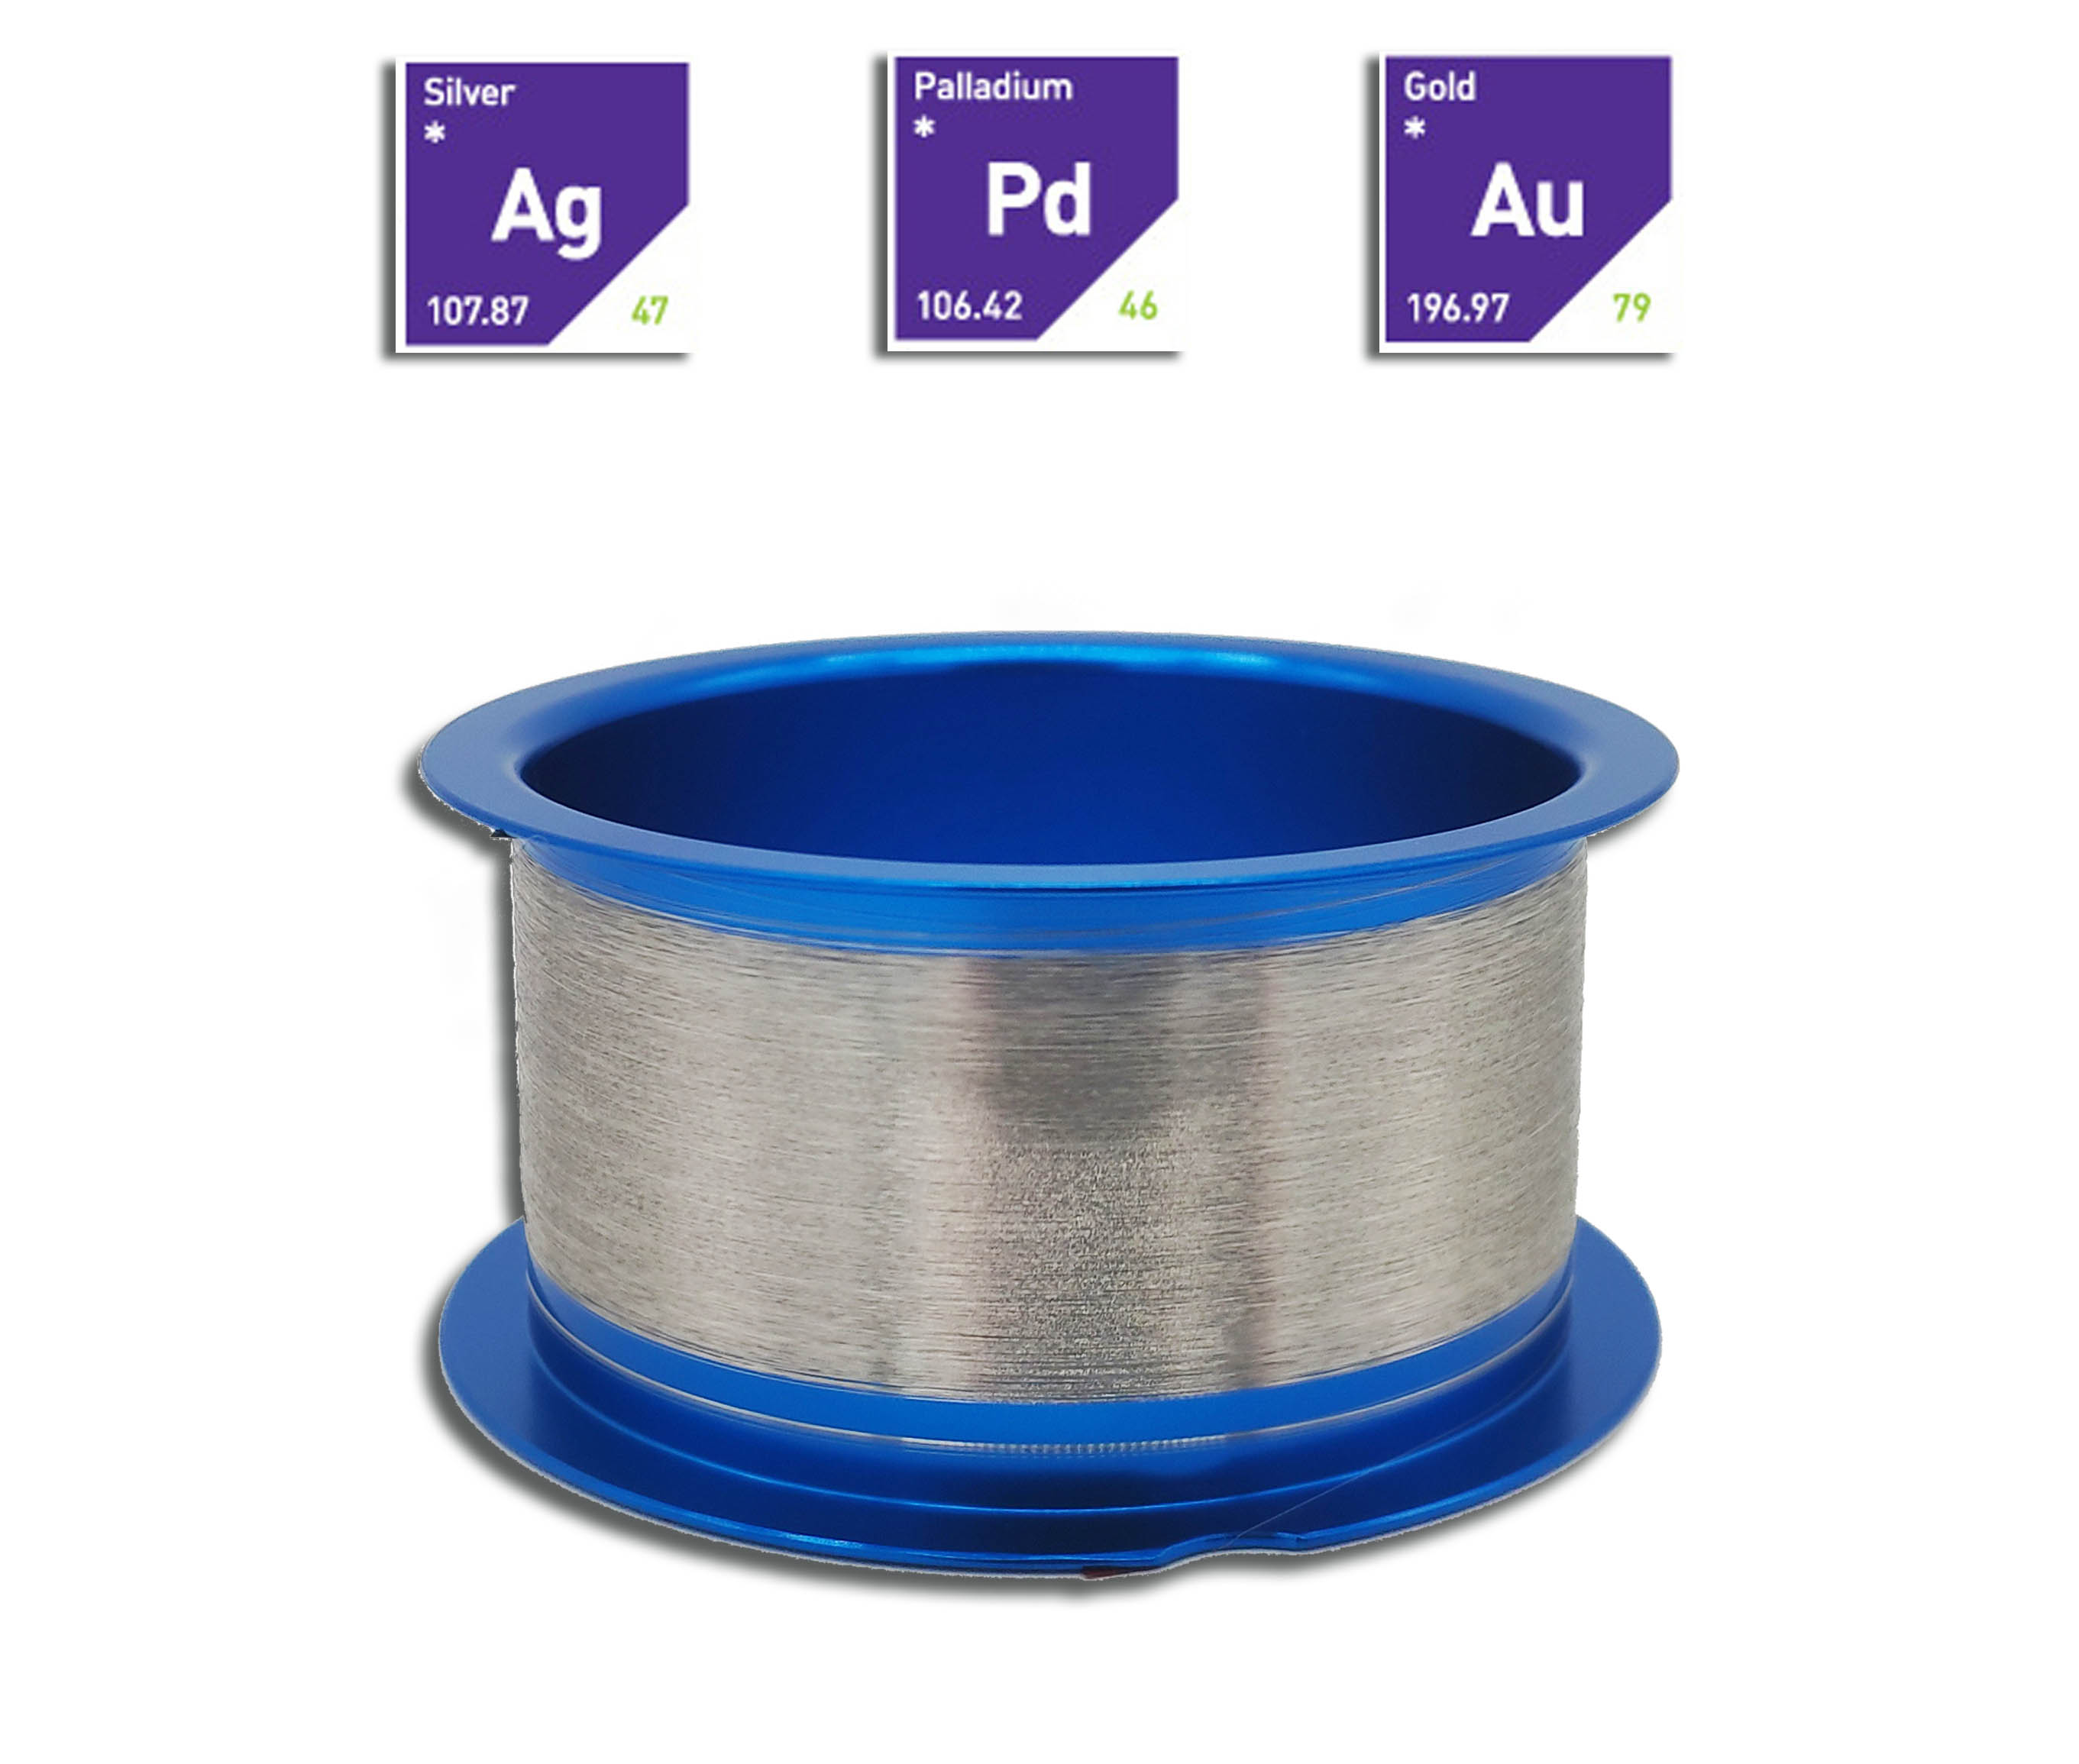 Ag96 Silver Bonding wire | Linqalloy